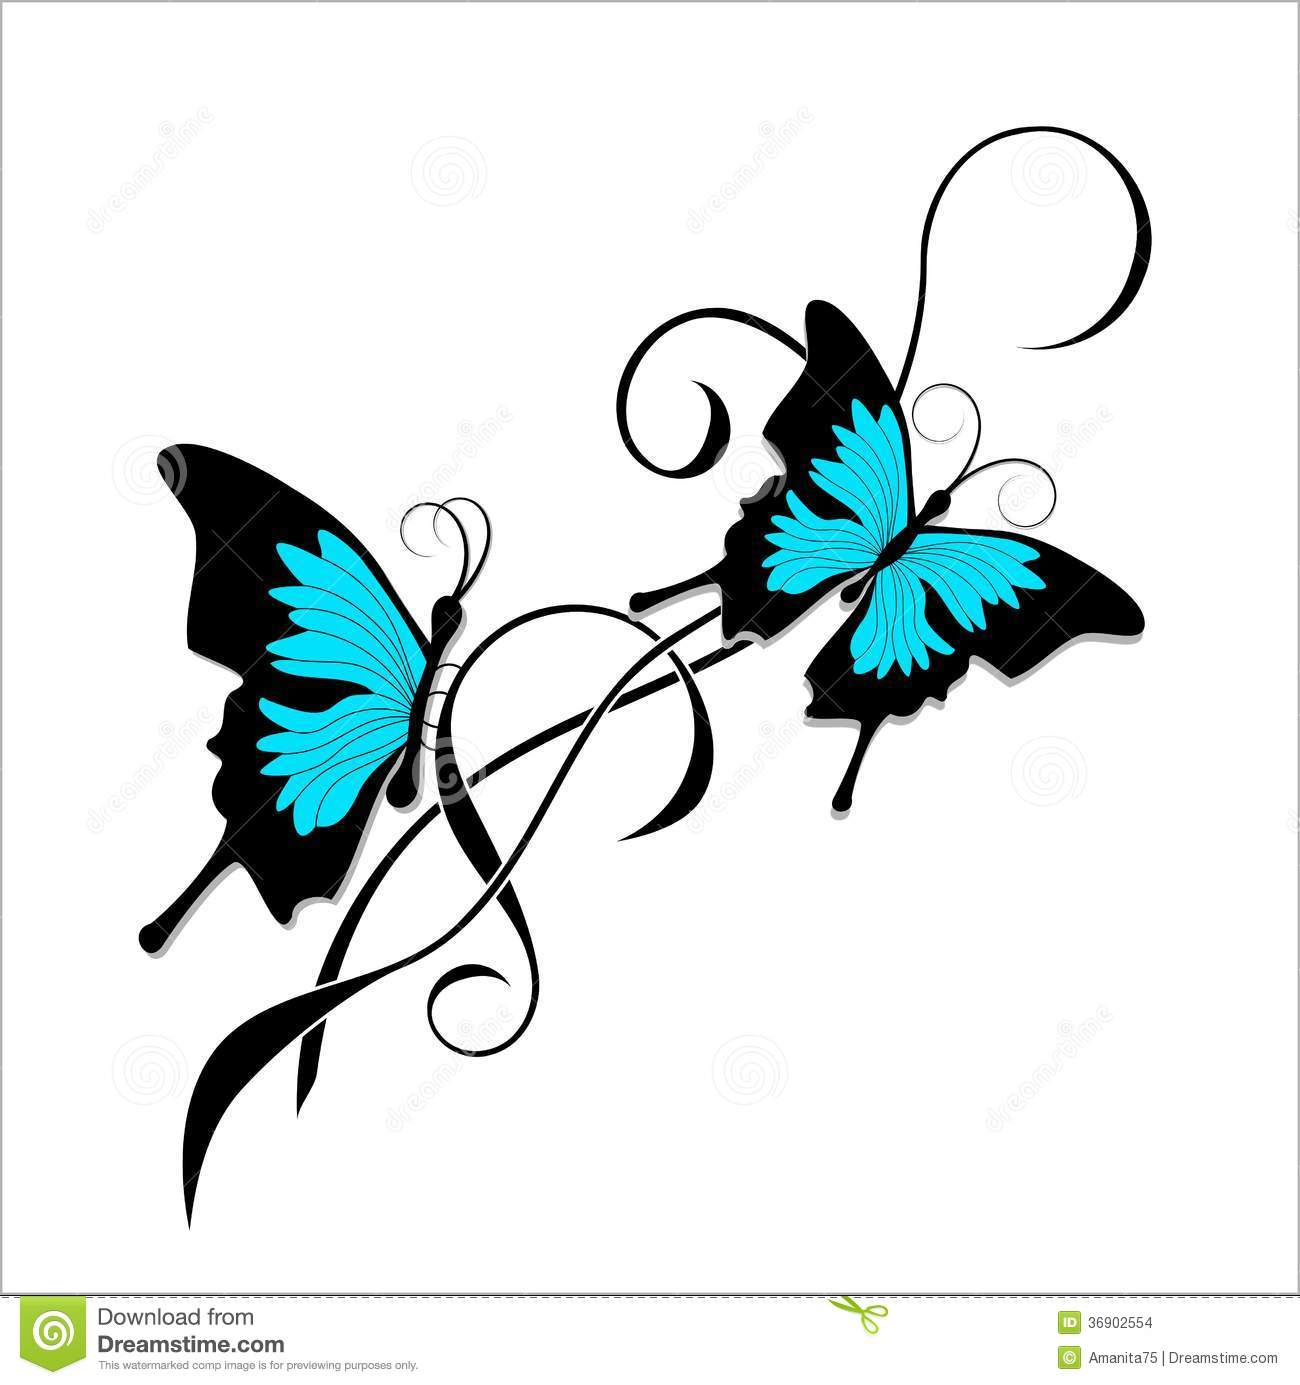 Tribal-Tattoos butterfly-tattoo-black-blue-tribal-beautiful-image-36902554